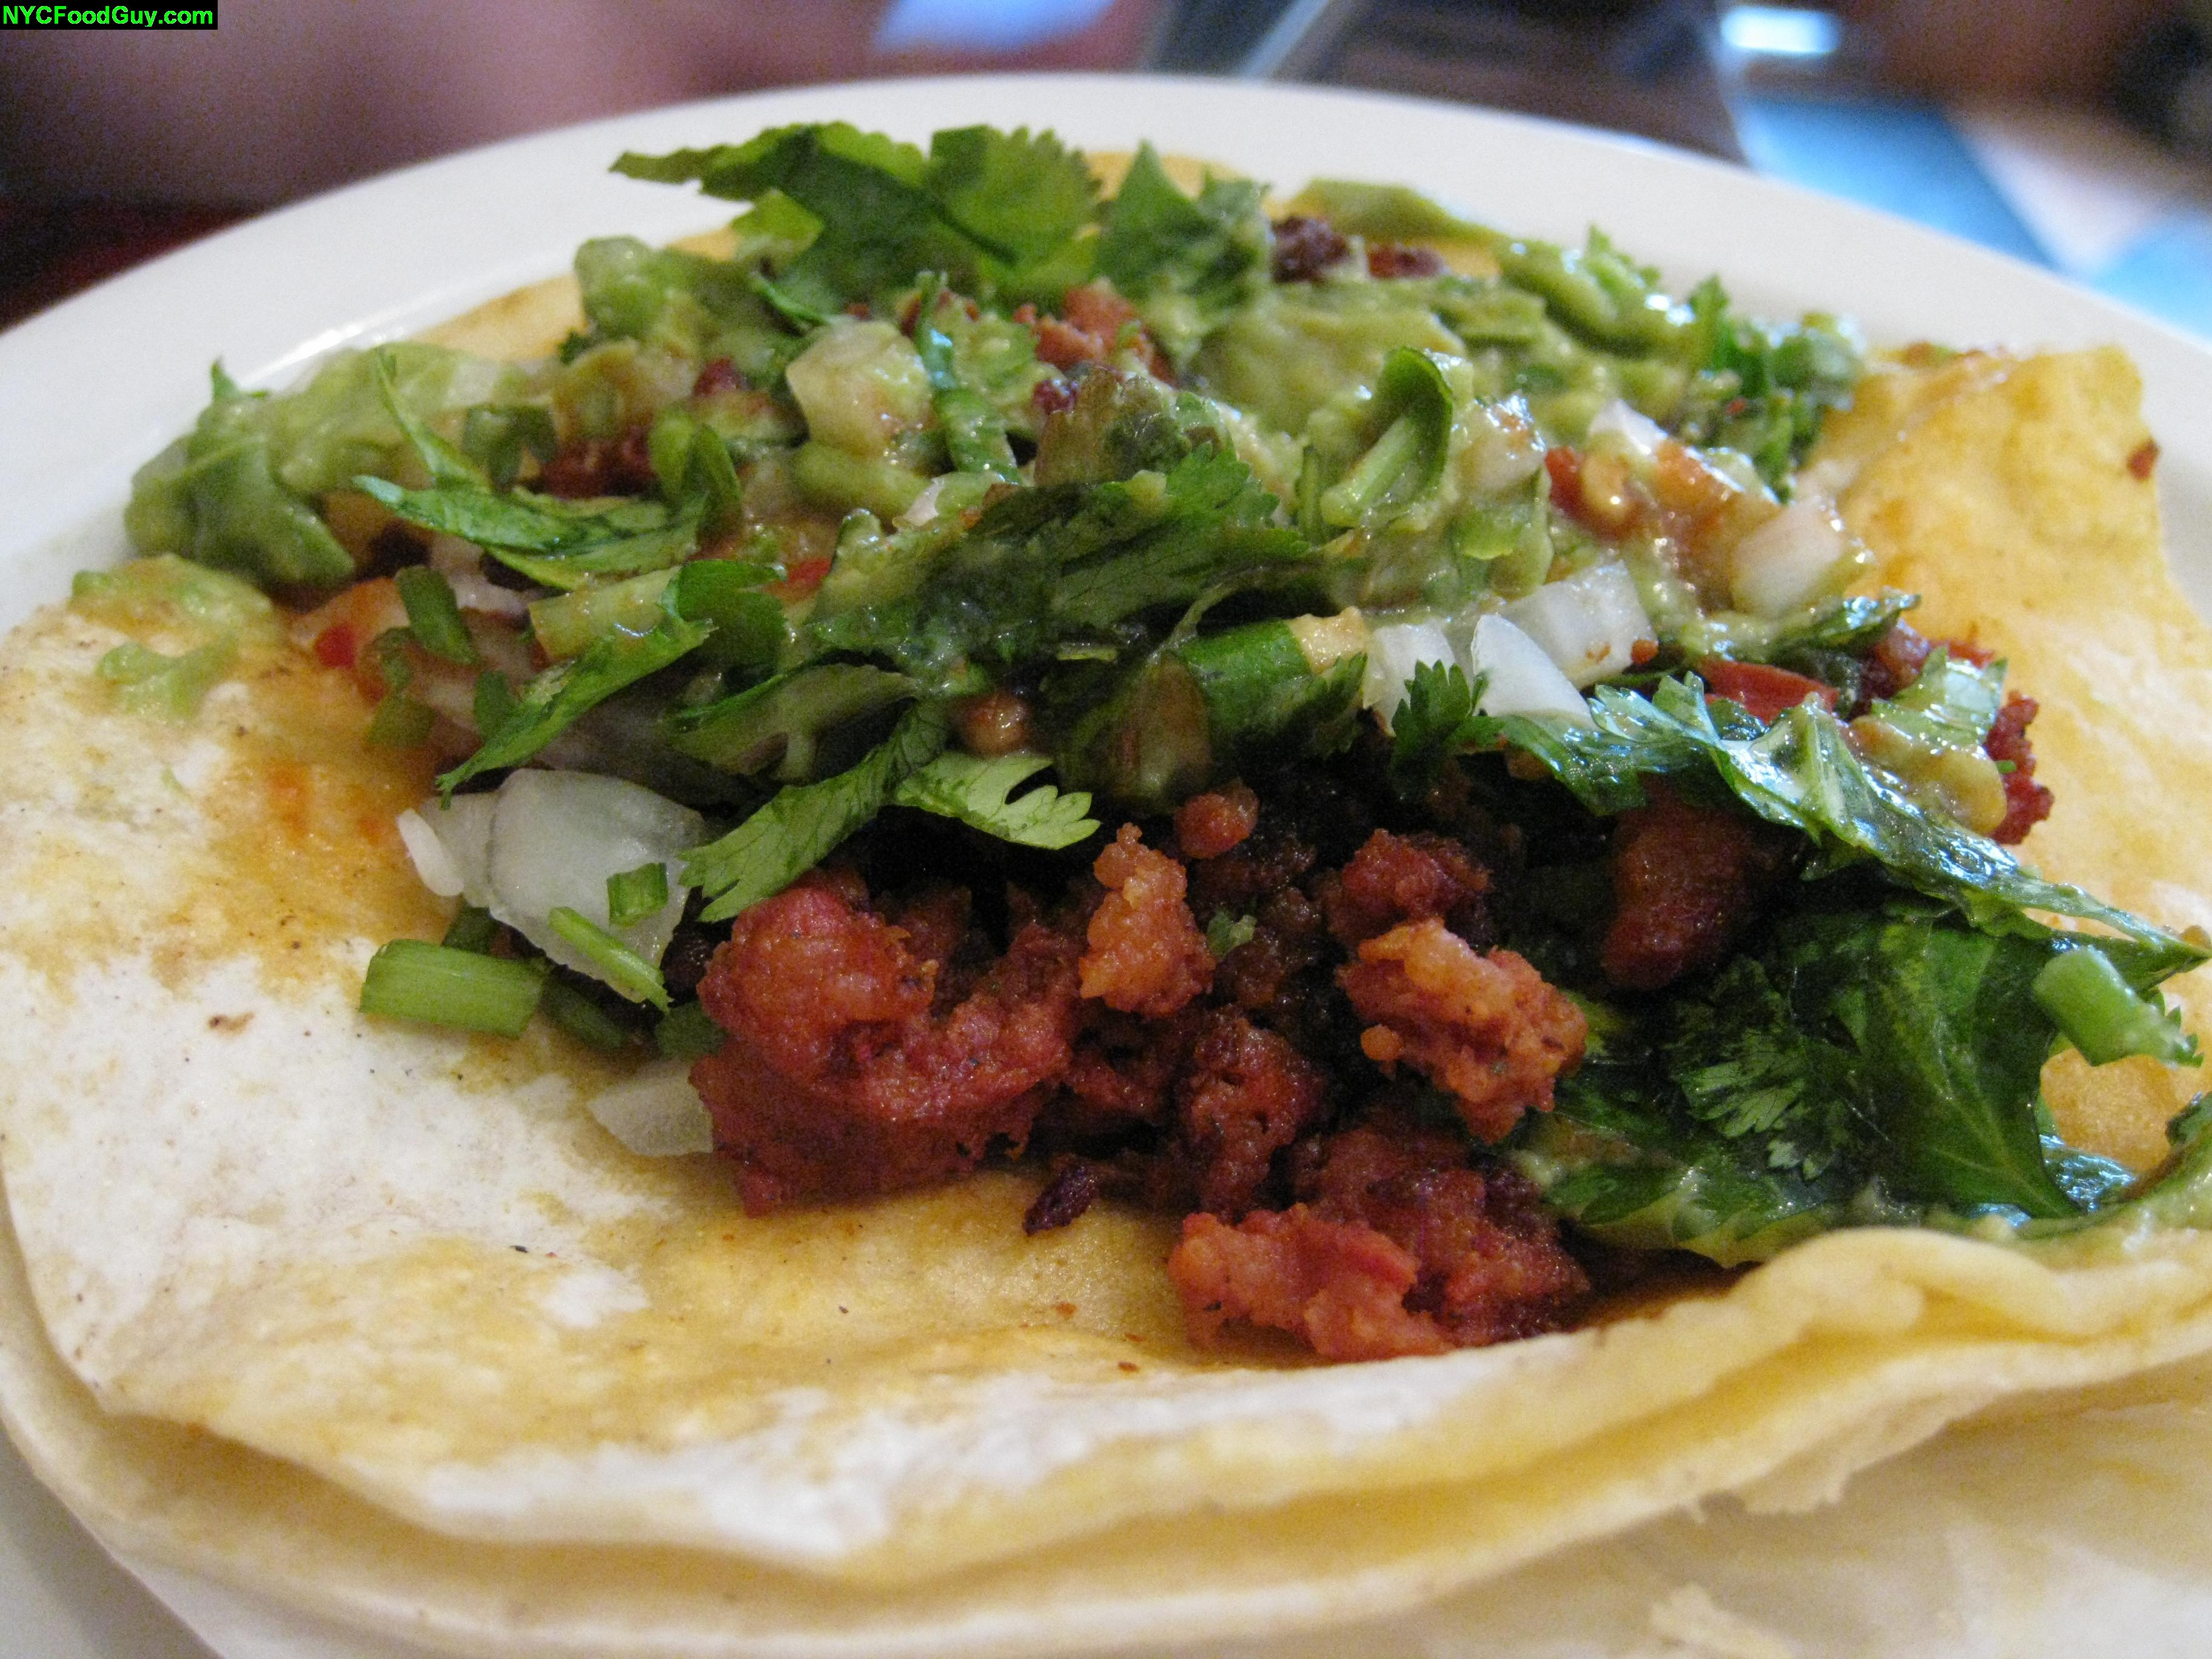 Chorizo is definitely the way to go at Tacos Matamoros